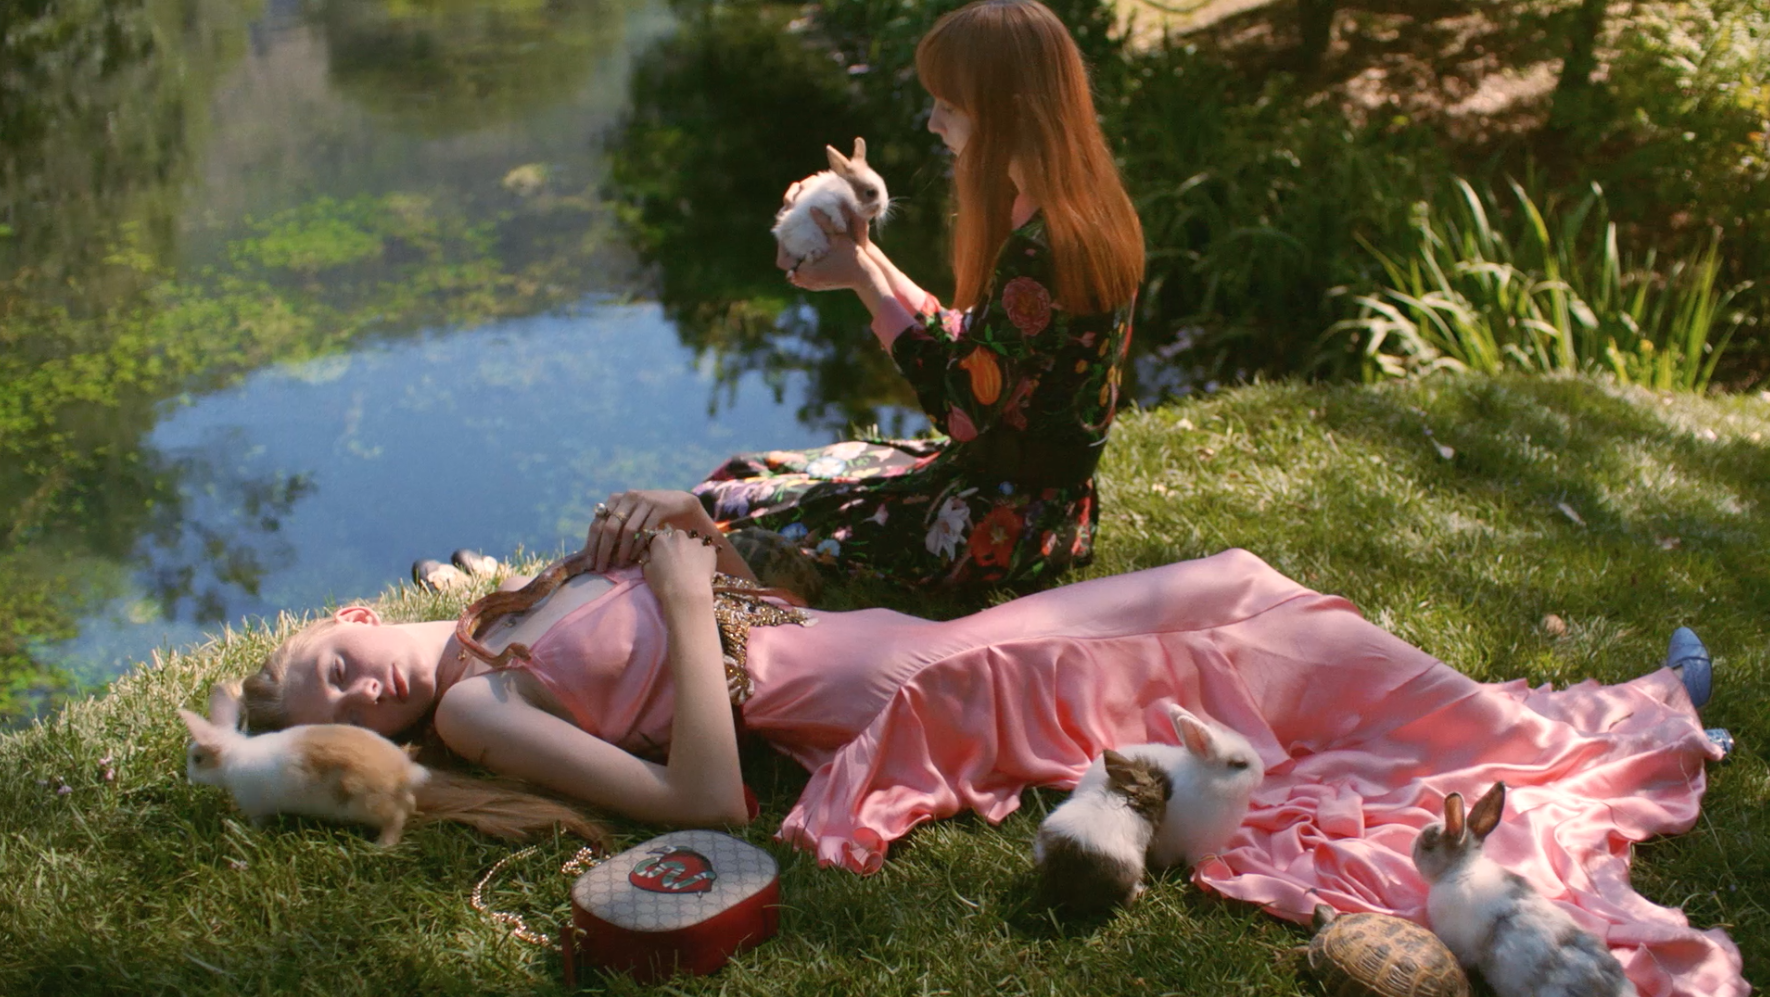 A screenshot taken from Gucci's 2016 Gift Giving campaign film.